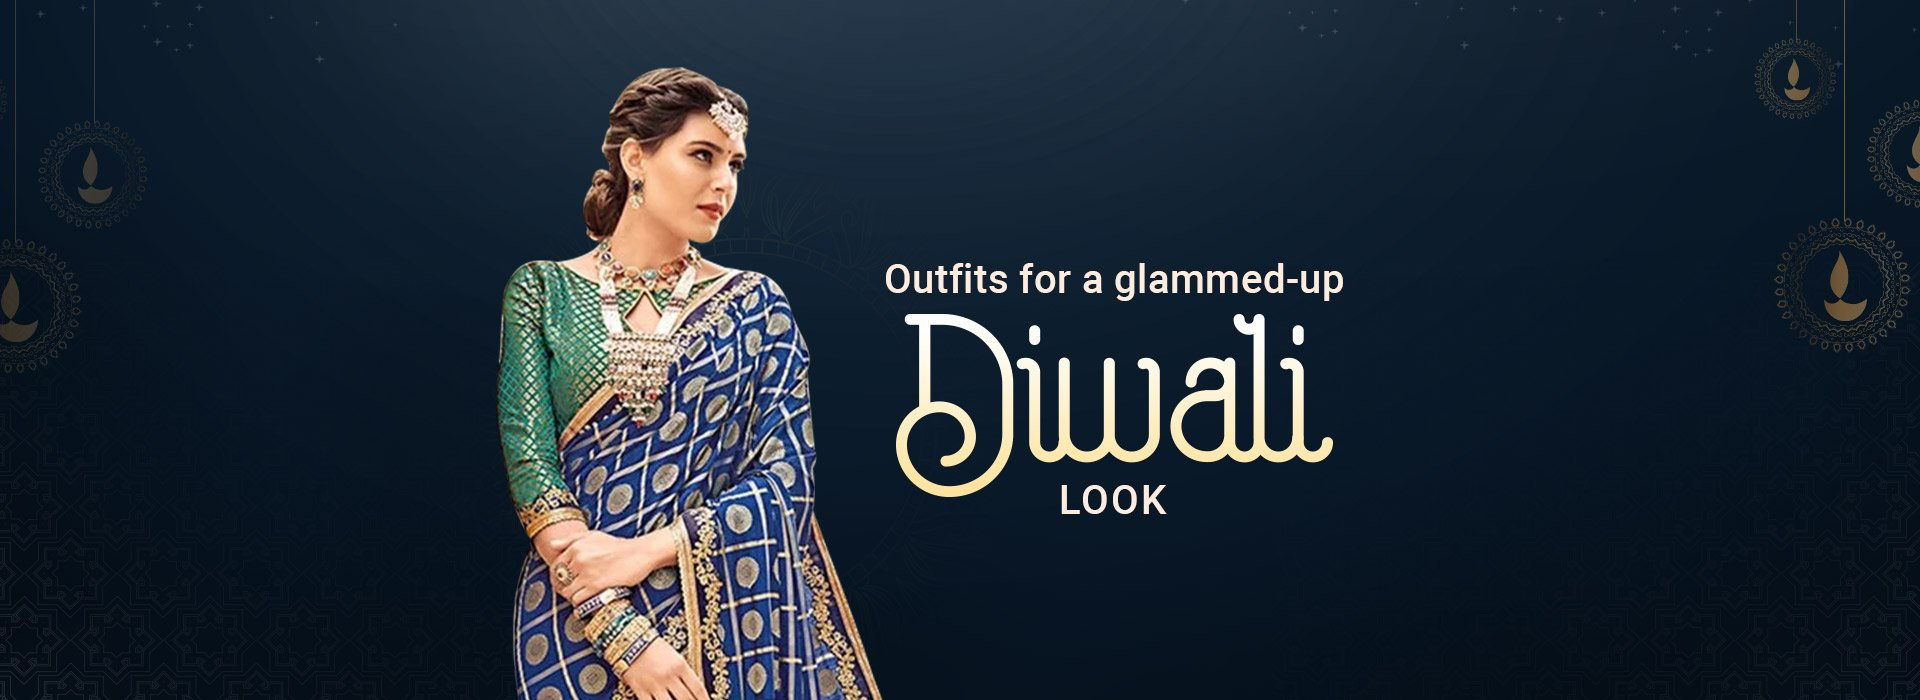 Outfits for a glammed-up Diwali look